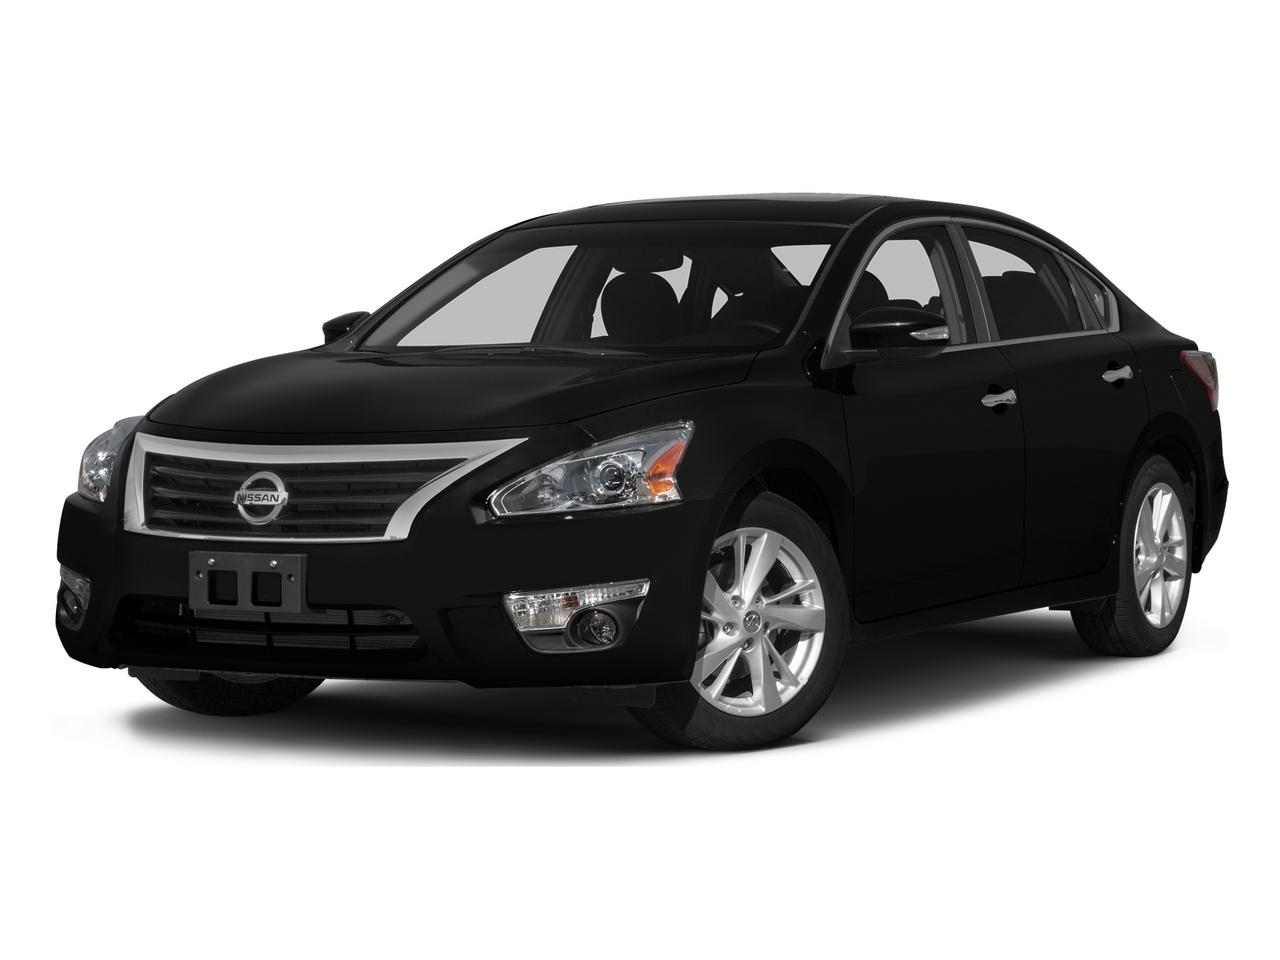 2015 Nissan Altima Vehicle Photo in Smyrna, GA 30080